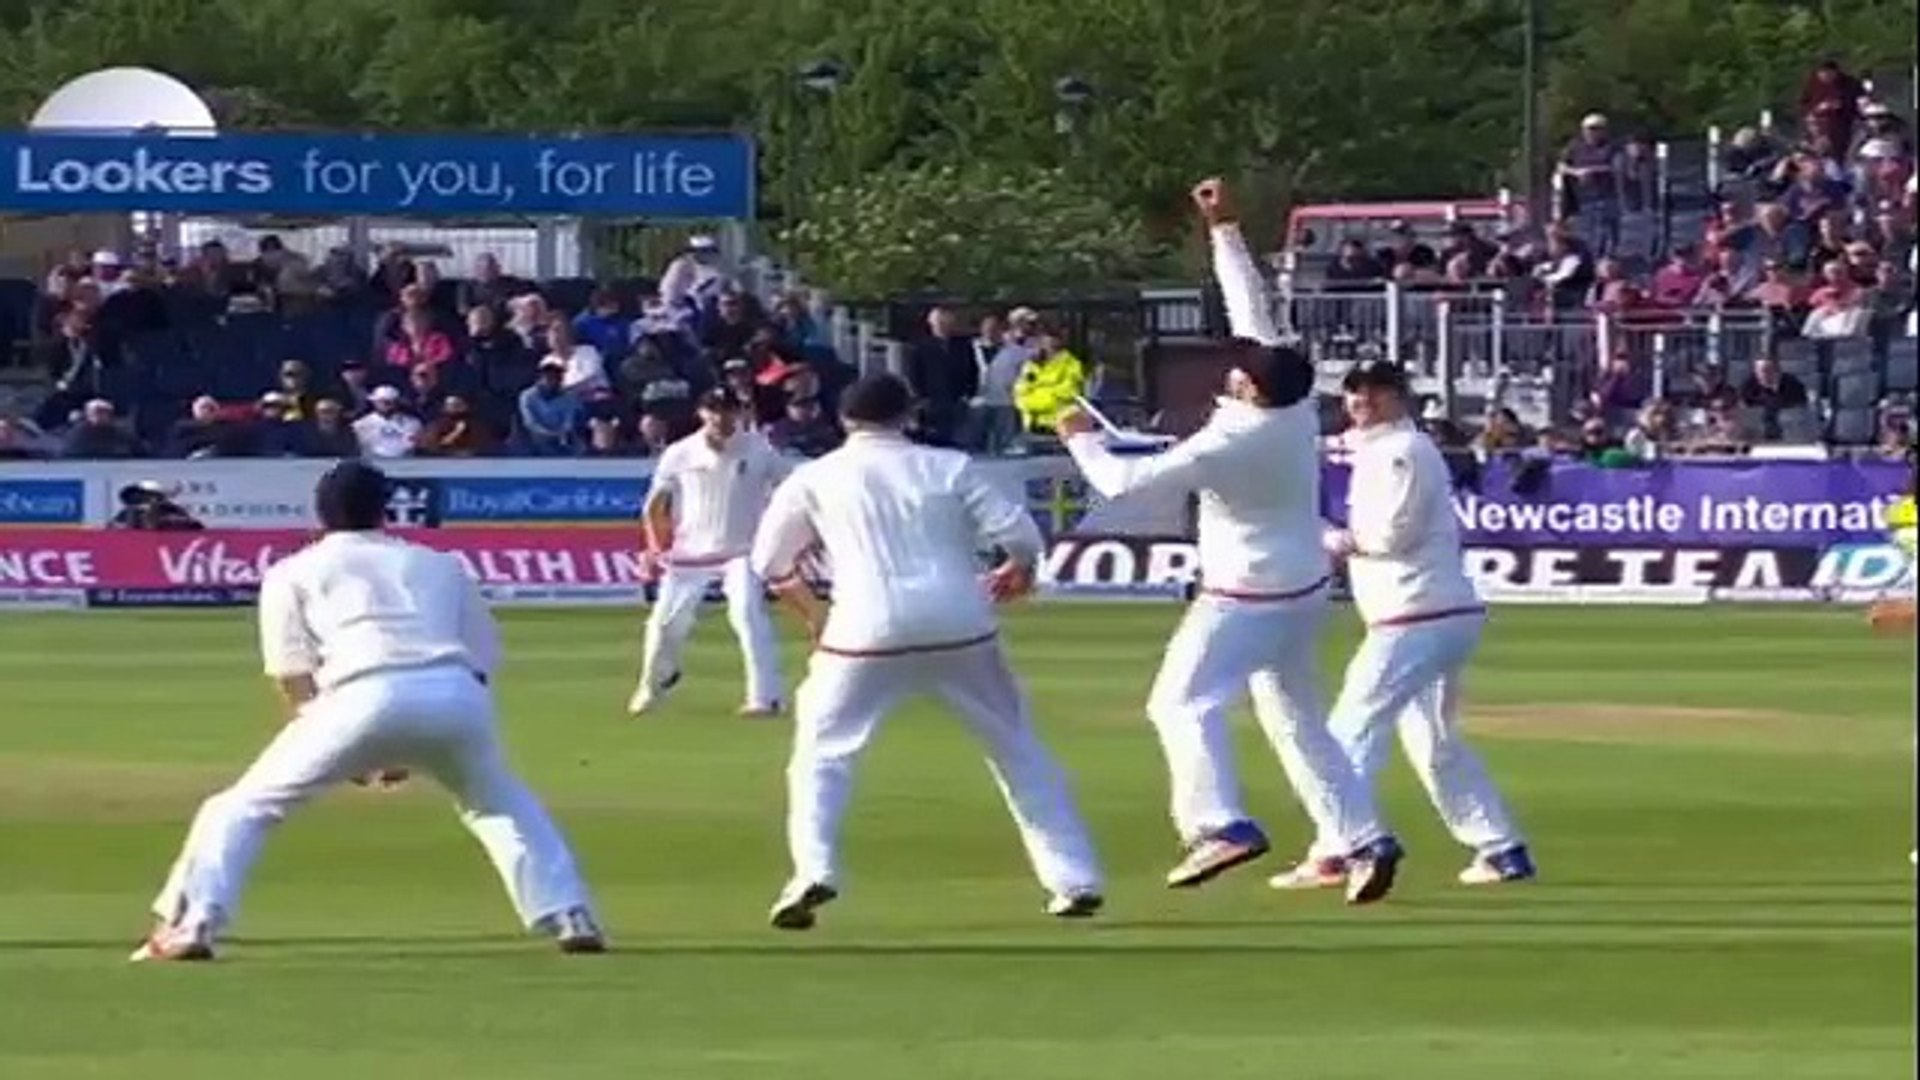 Catch video of best catches in cricket history - Amazing catches, sets the new standards of fielding